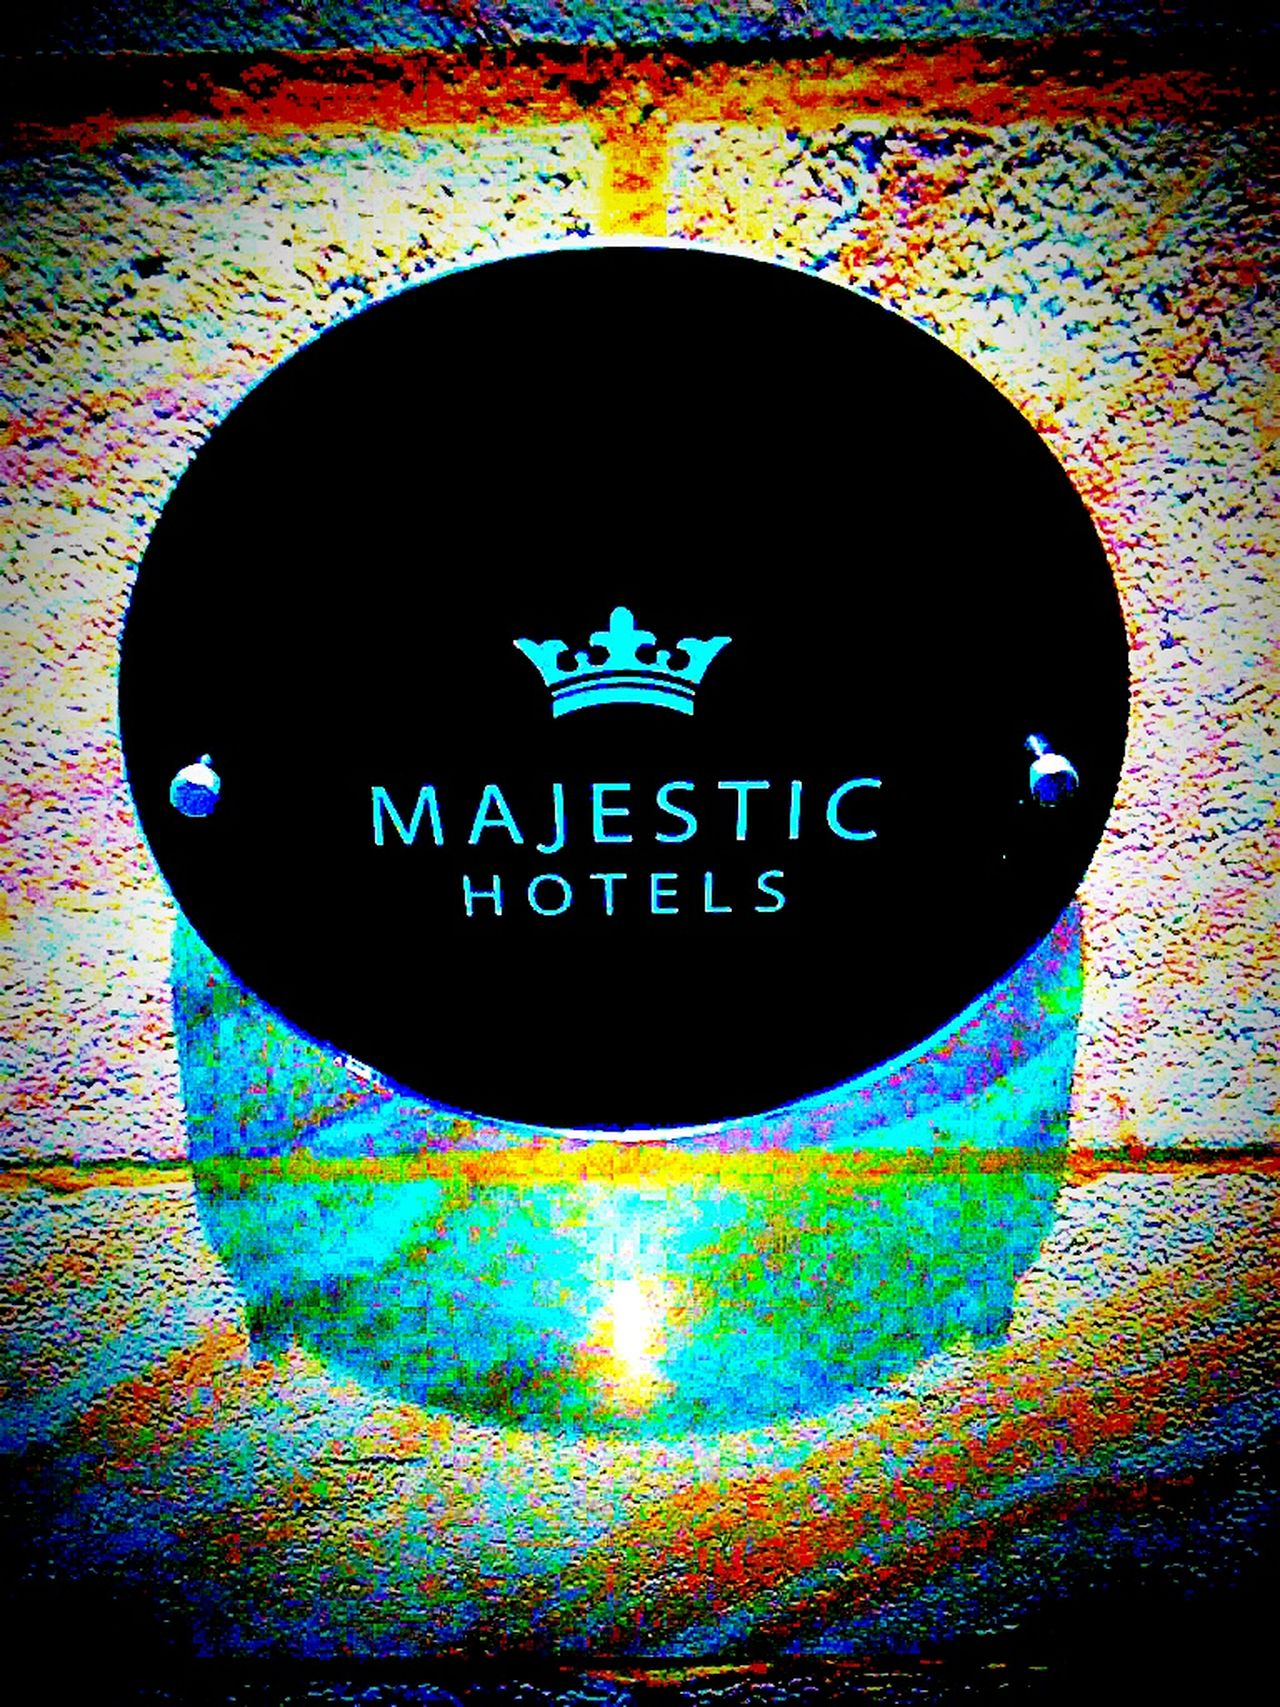 Majestic Hotels Hotel Names Wall Plaque Hotel Sign Signs_collection SignSignEverywhereASign MajesticHotel Hotels Majesty Sign Notices Signage Signs Signporn Signs & More Signs Adelaide, South Australia City Of Adelaide CityOfAdelaide SignsSignsAndMoreSigns SIGN. Adelaide Street Photography Signs, Signs, & More Signs Advertising Signs Signstalkers